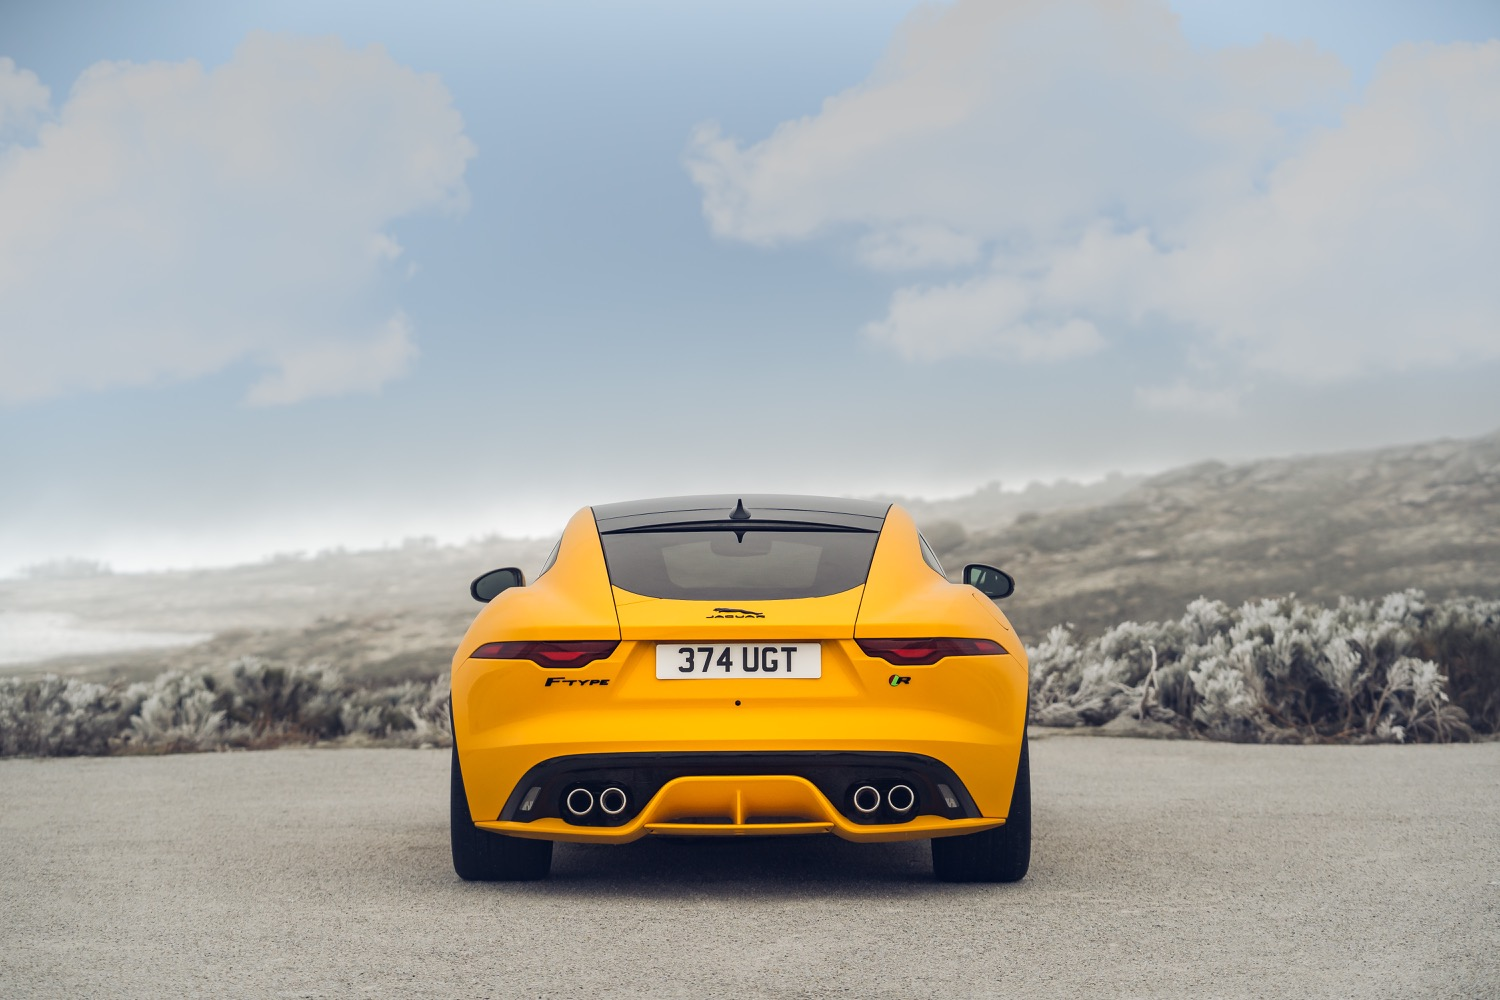 2020_jaguar_ftype_v8_awd_coupe_yellow_test_04